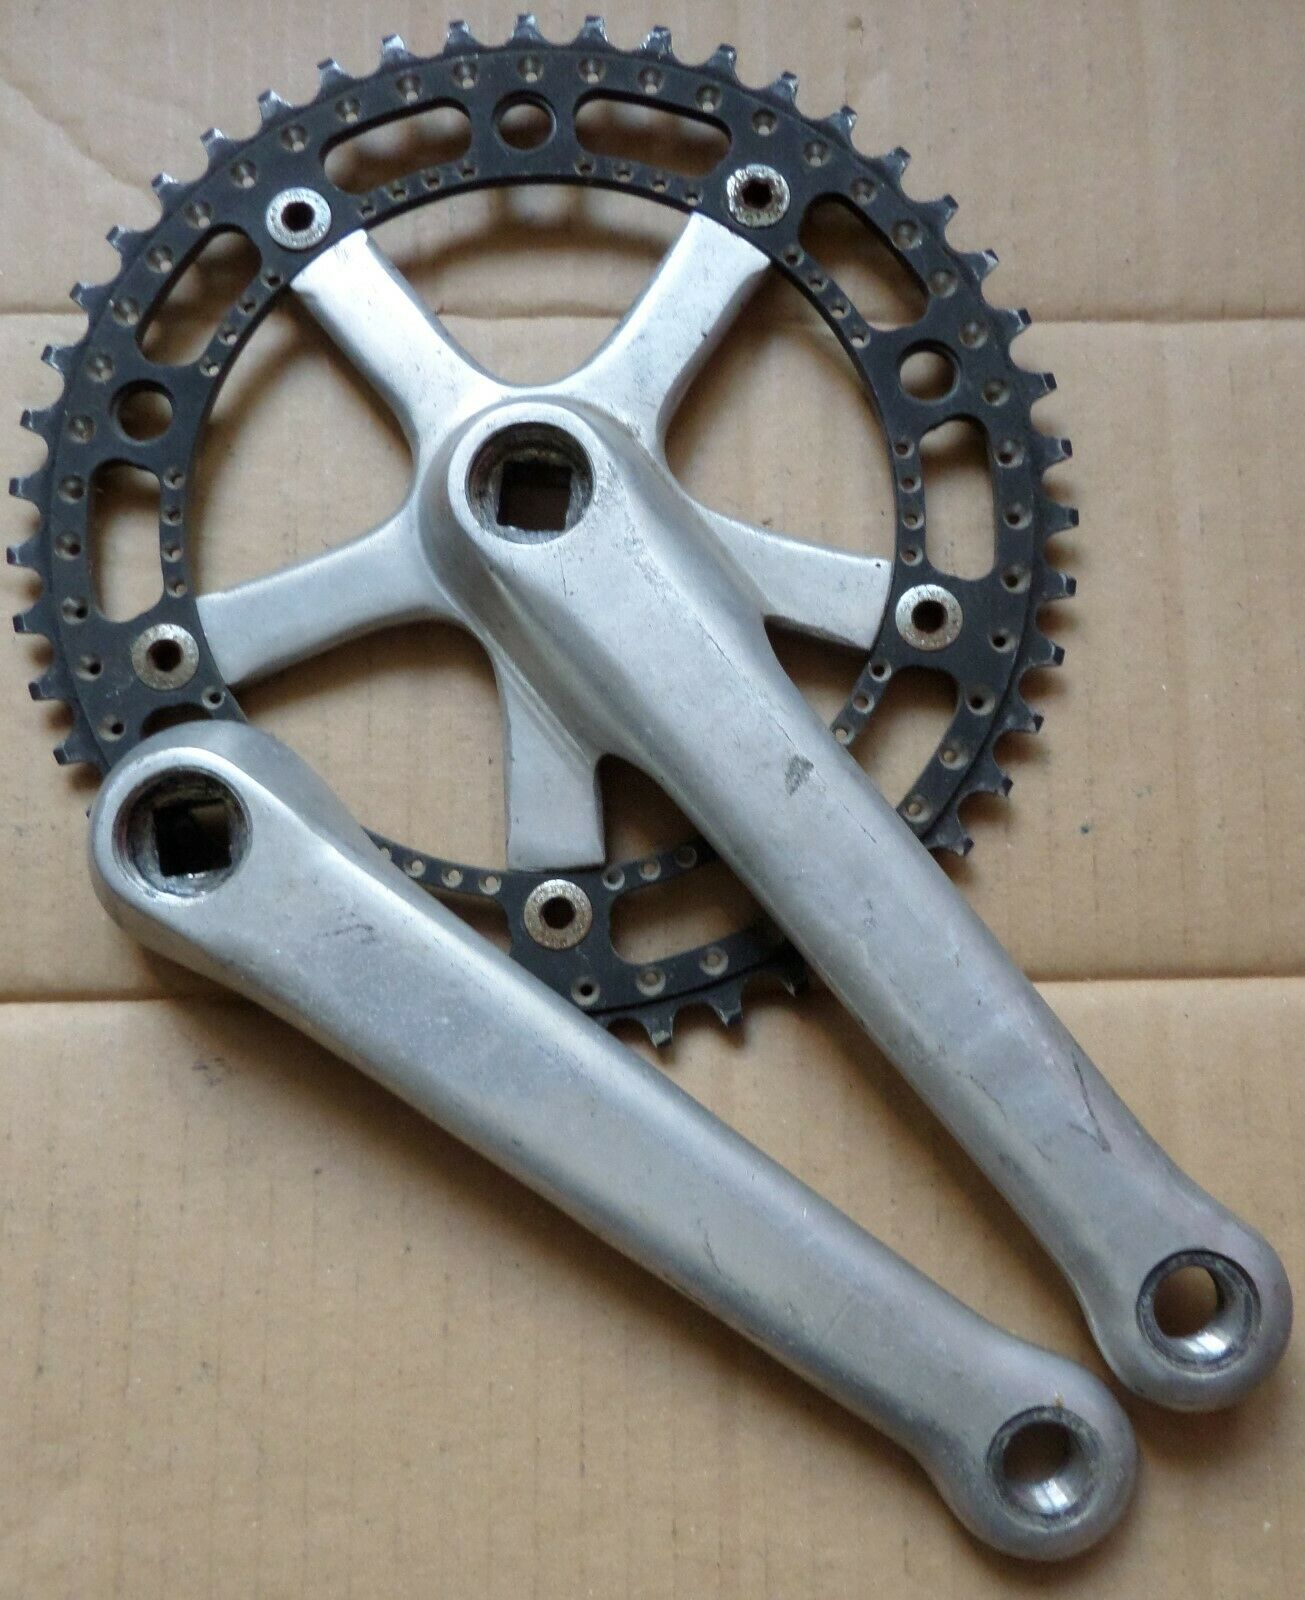 Very rare track cranks 172,5 and chainrings 47t;50t;52t CKTB XB3 Takhion